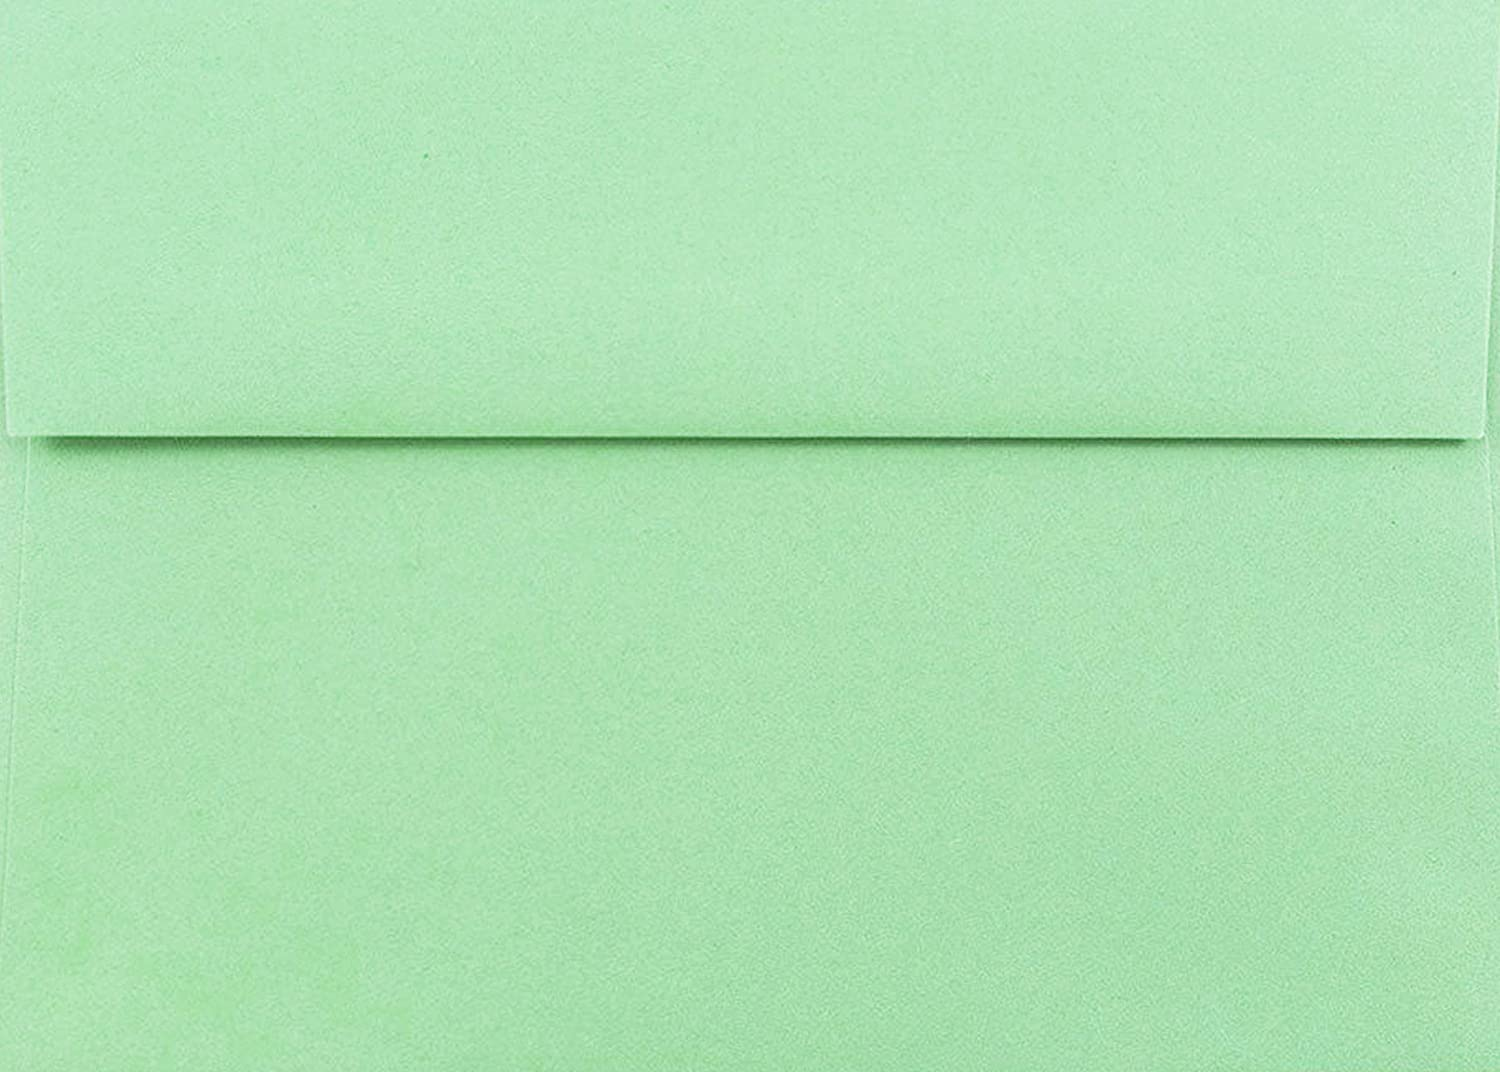 Green Pastel 50 Boxed 5-1 4 x 7-1 Quality Reservation inspection A7 Car for 7 Envelopes X 5